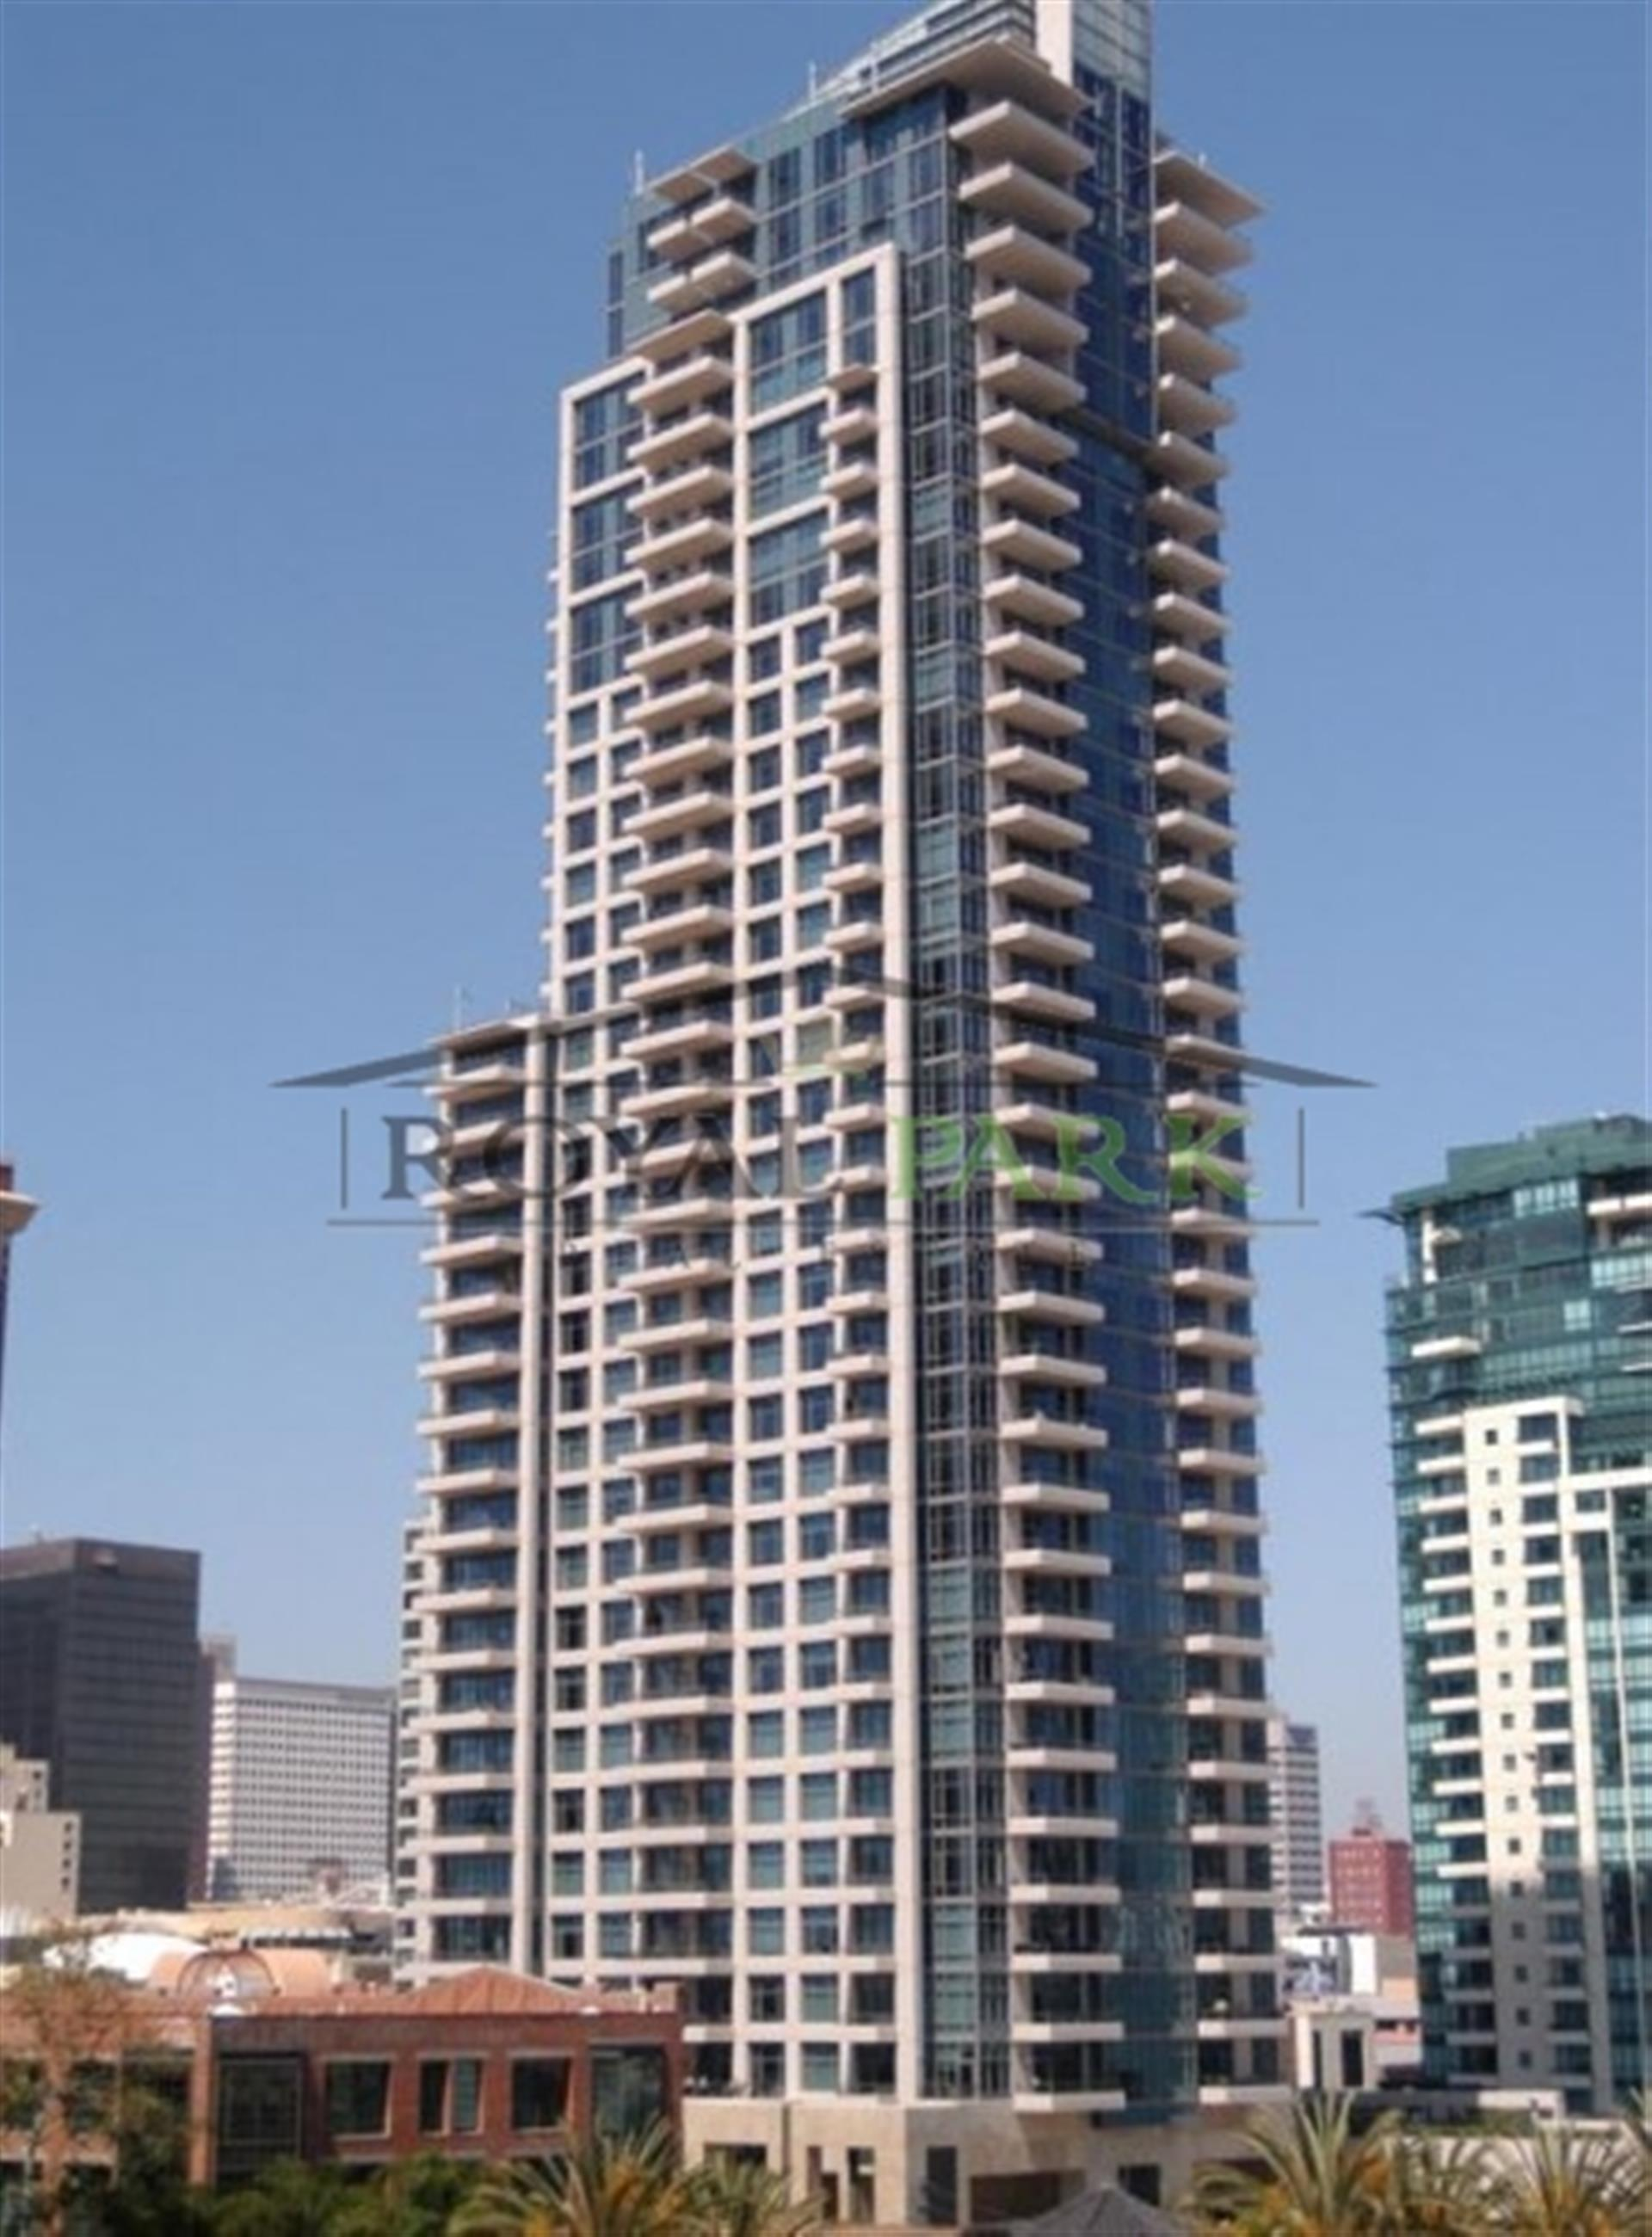 3 B/r Apartment With Sheikh Zayed Road View For Sale In Marina Pinnacle,dubai Marina!